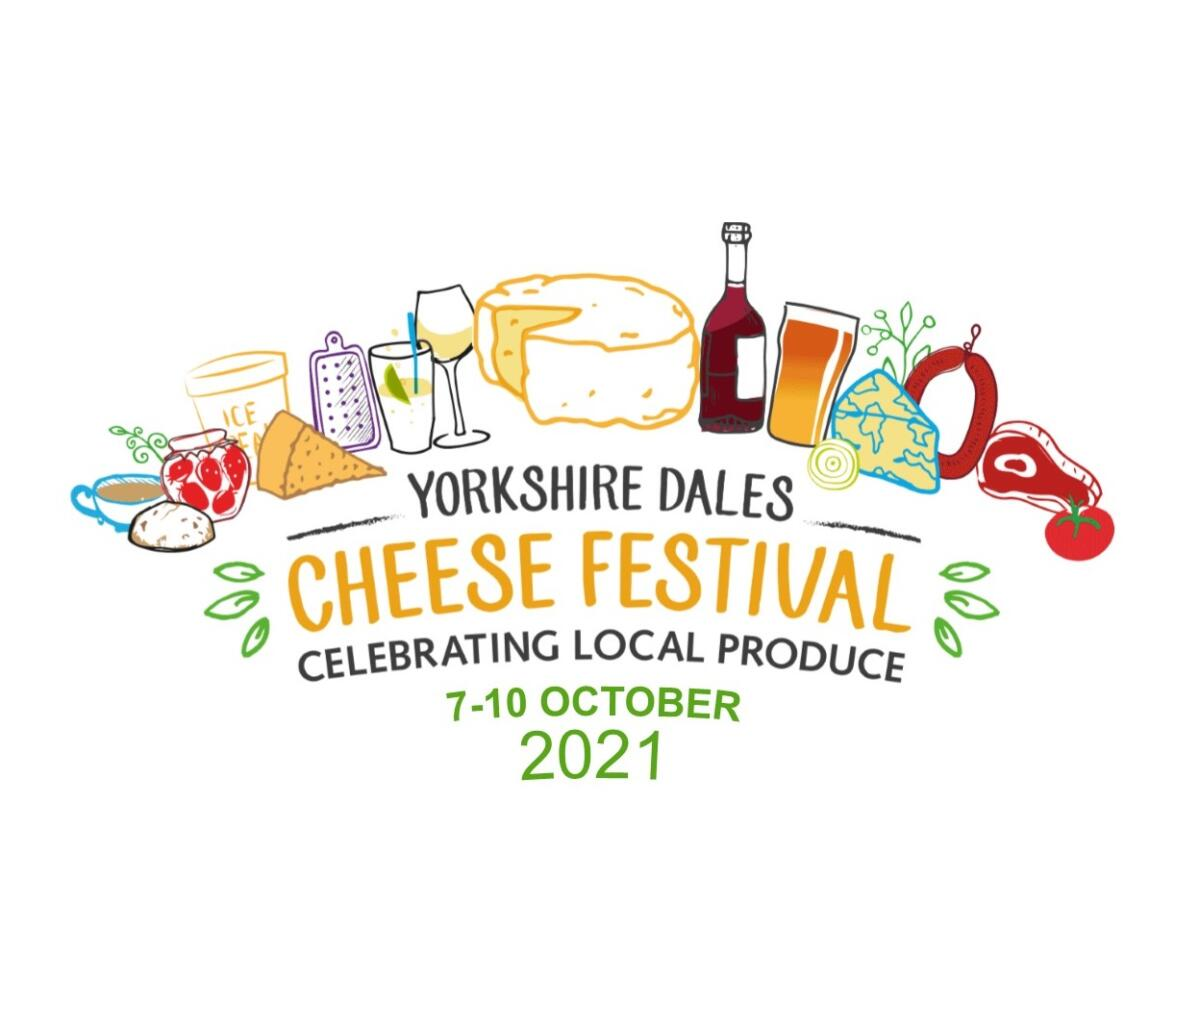 Yorkshire Dales Cheese Festival 2021